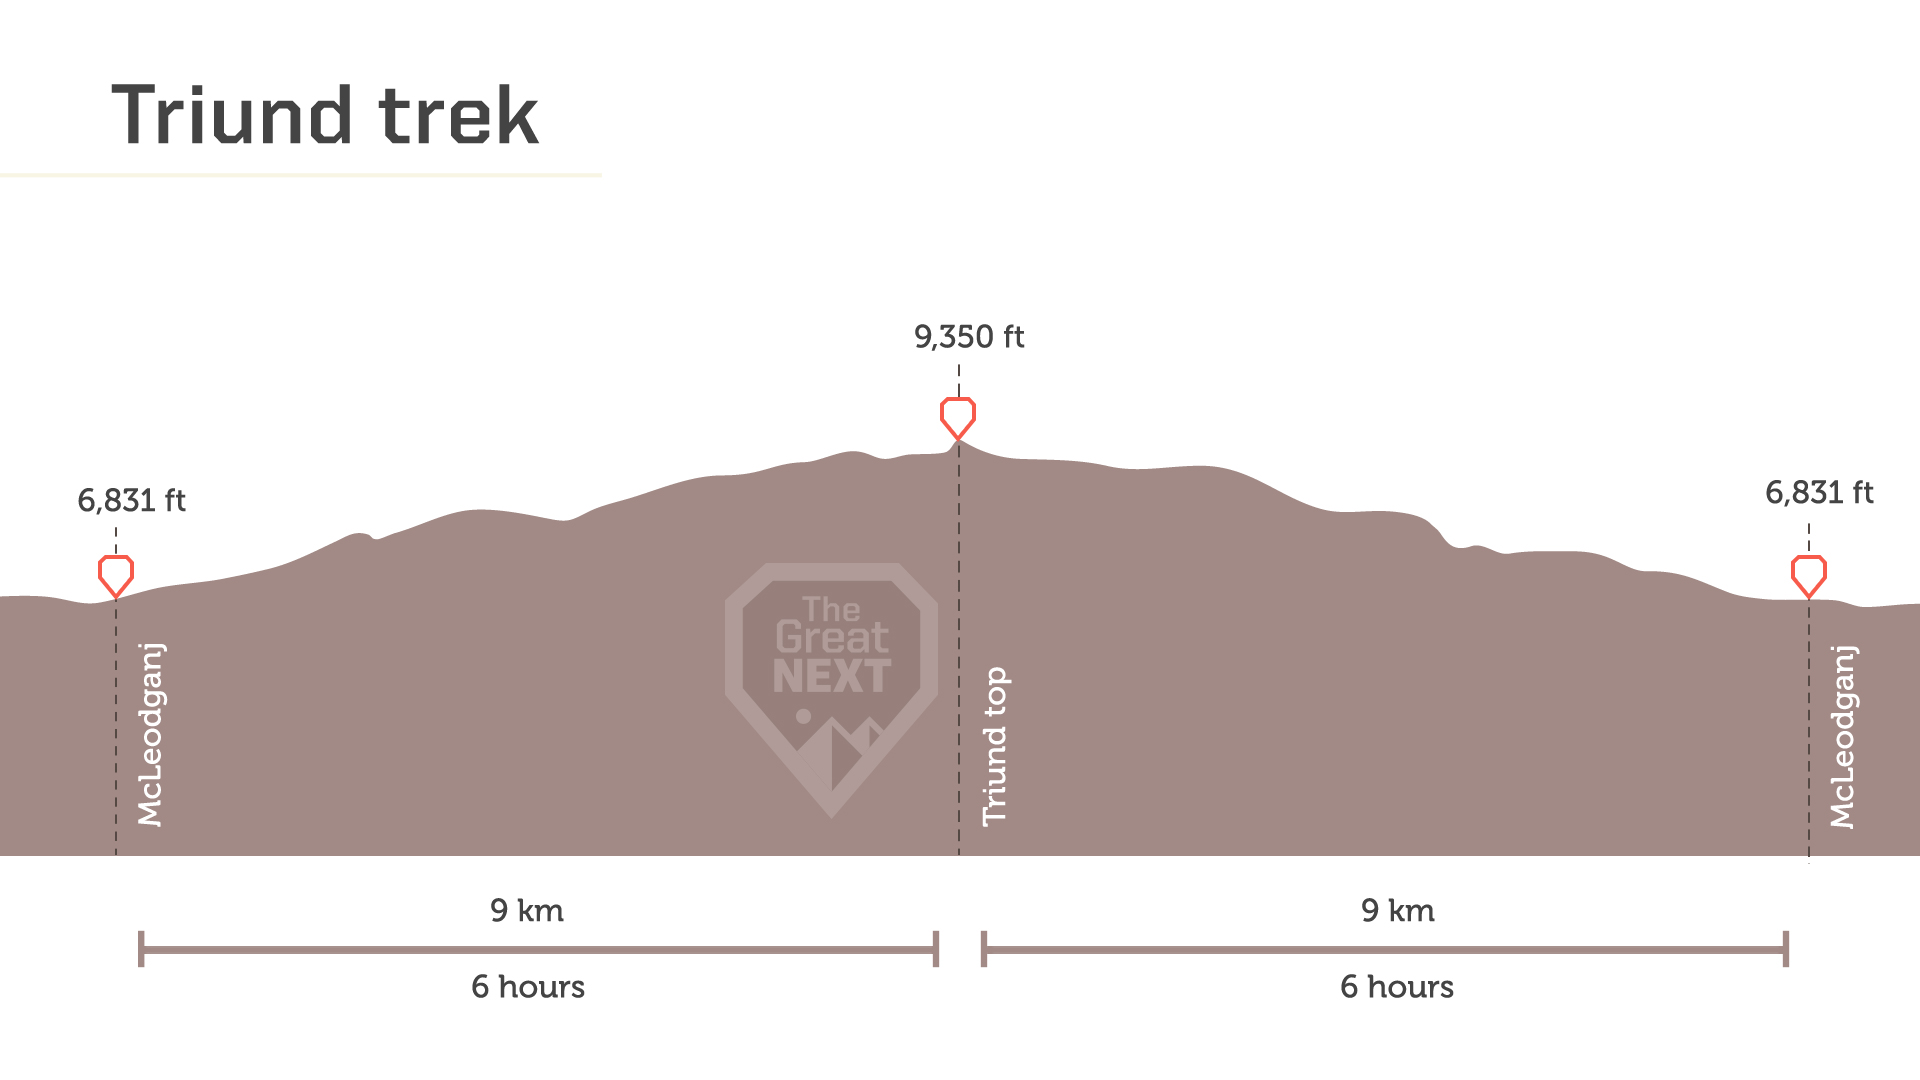 See the altitude map for the Triund trek.